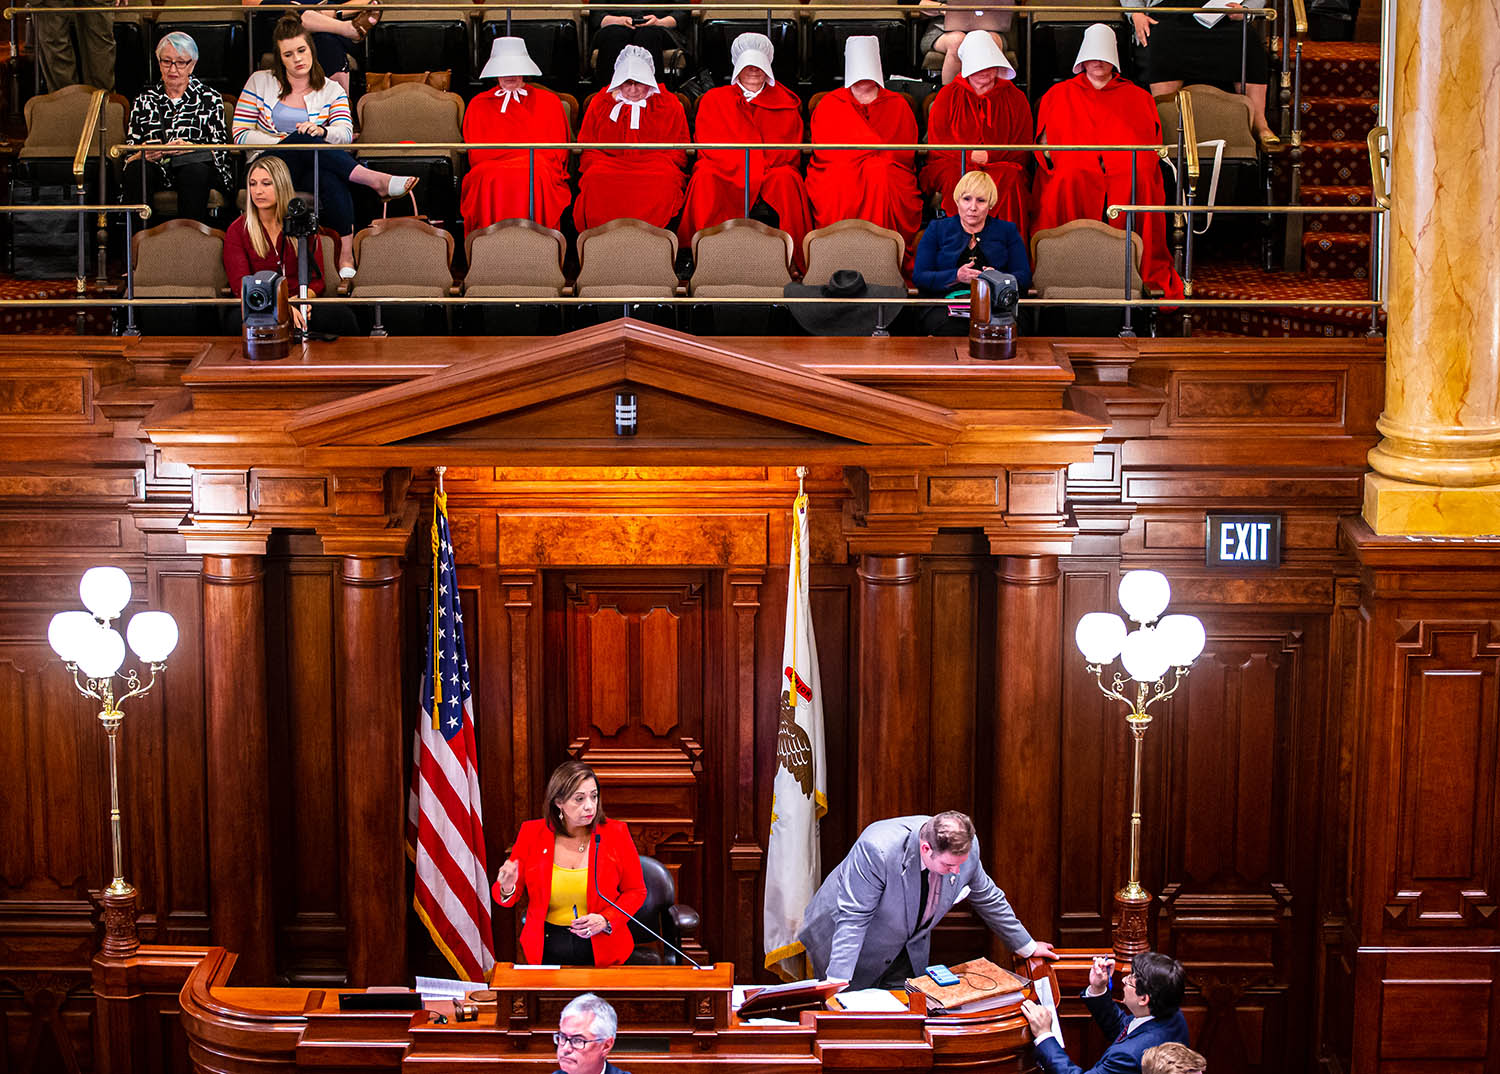 The Illinois Housemaids sit in the the President's Gallery of the Illinois Senate showing their support of the Reproductive Health Act on the last scheduled day of the Spring Session at the Illinois State Capitol, Friday, May 31, 2019, in Springfield, Ill. [Justin L. Fowler/The State Journal-Register]